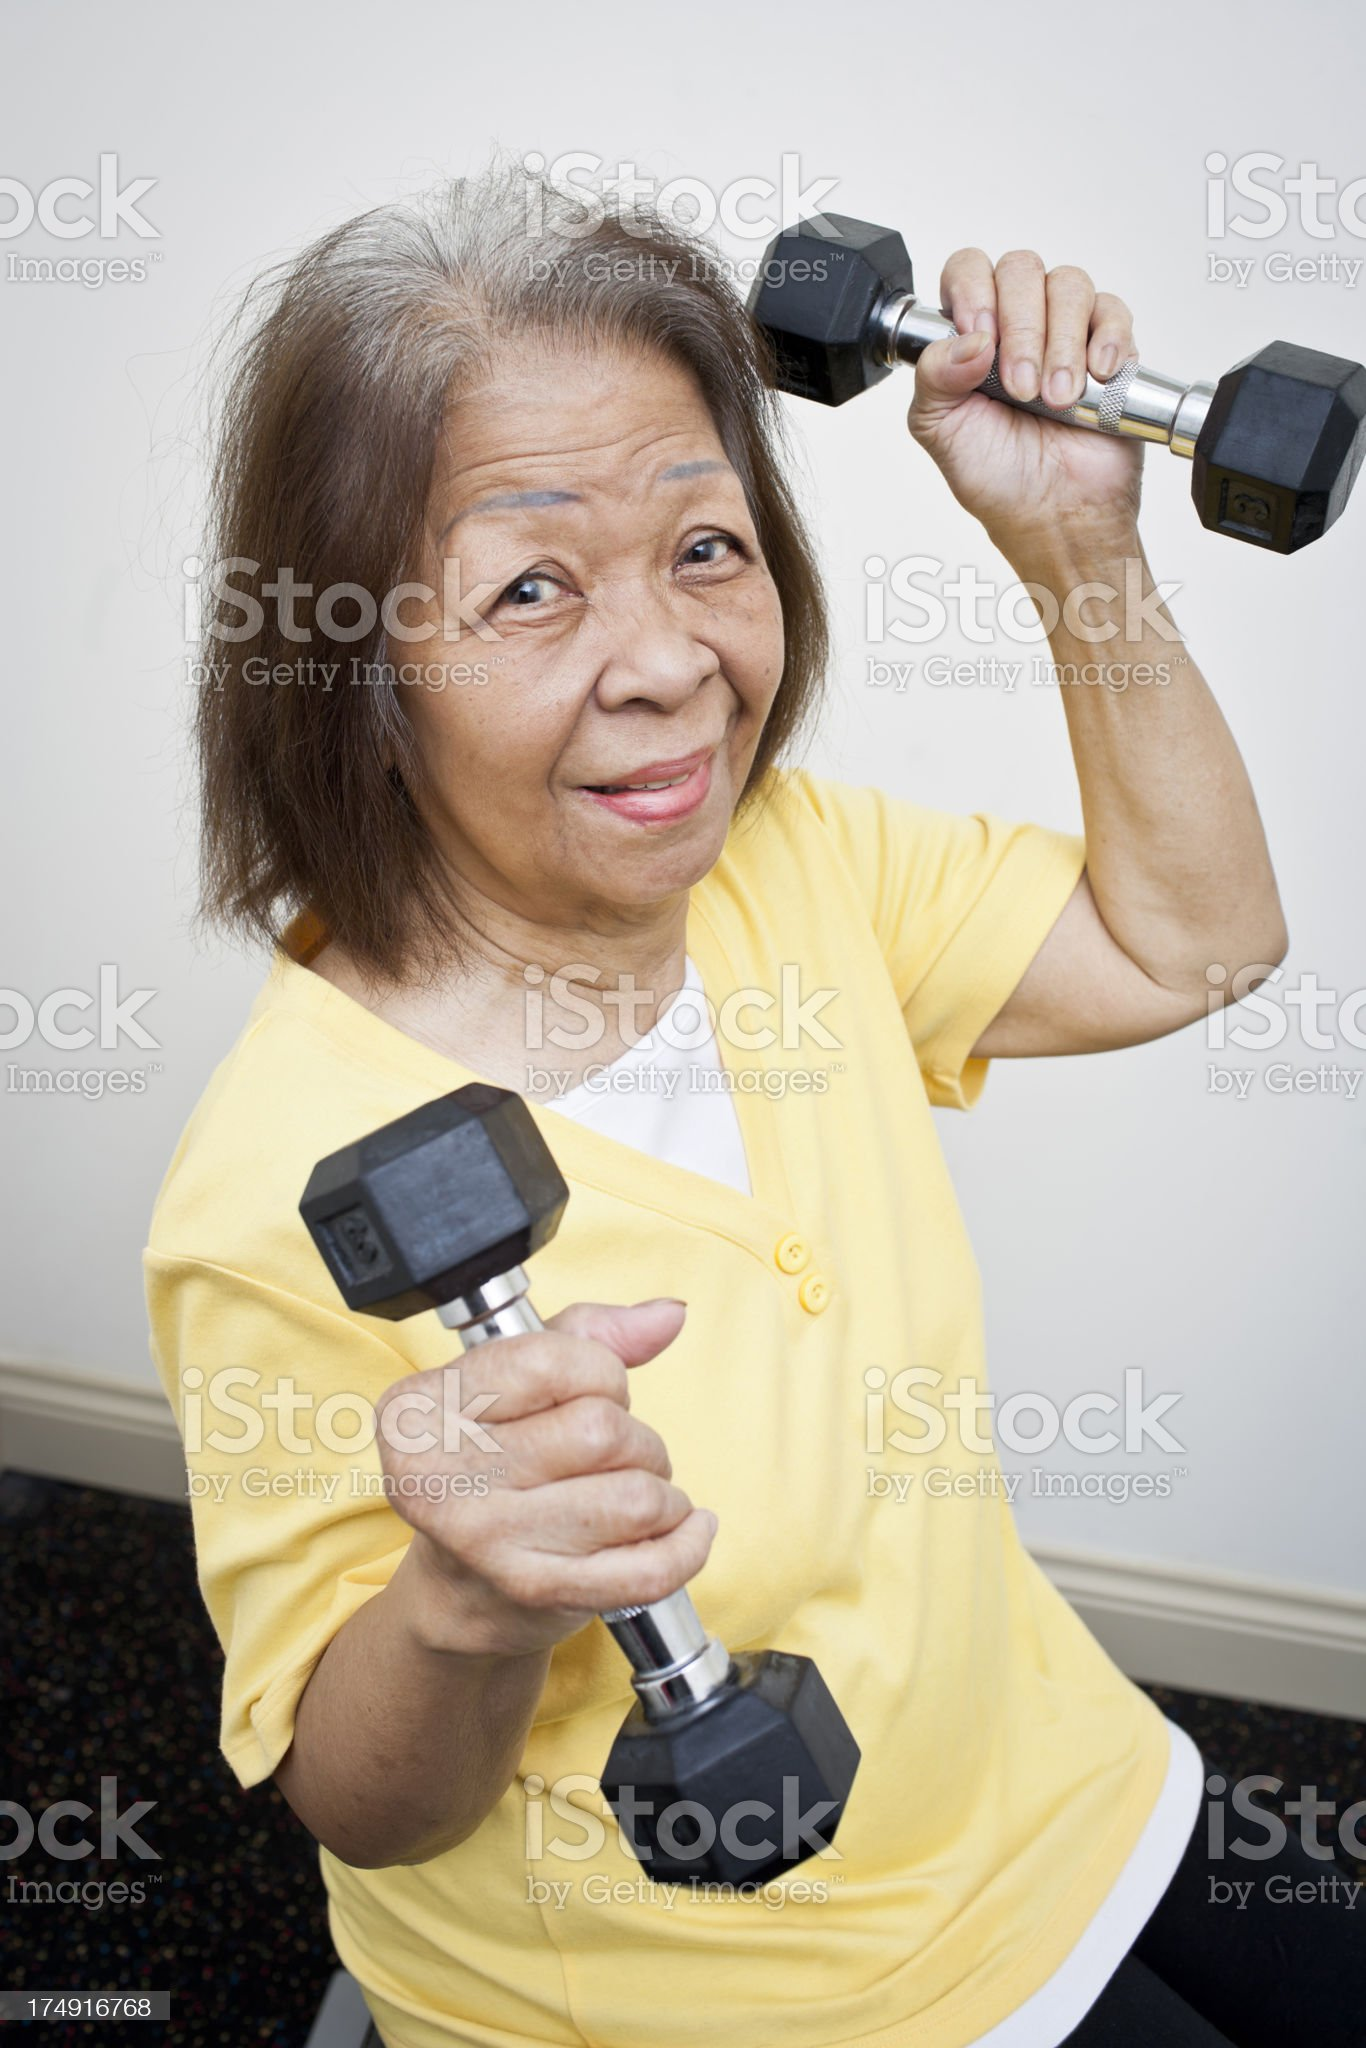 Physical Fitness royalty-free stock photo